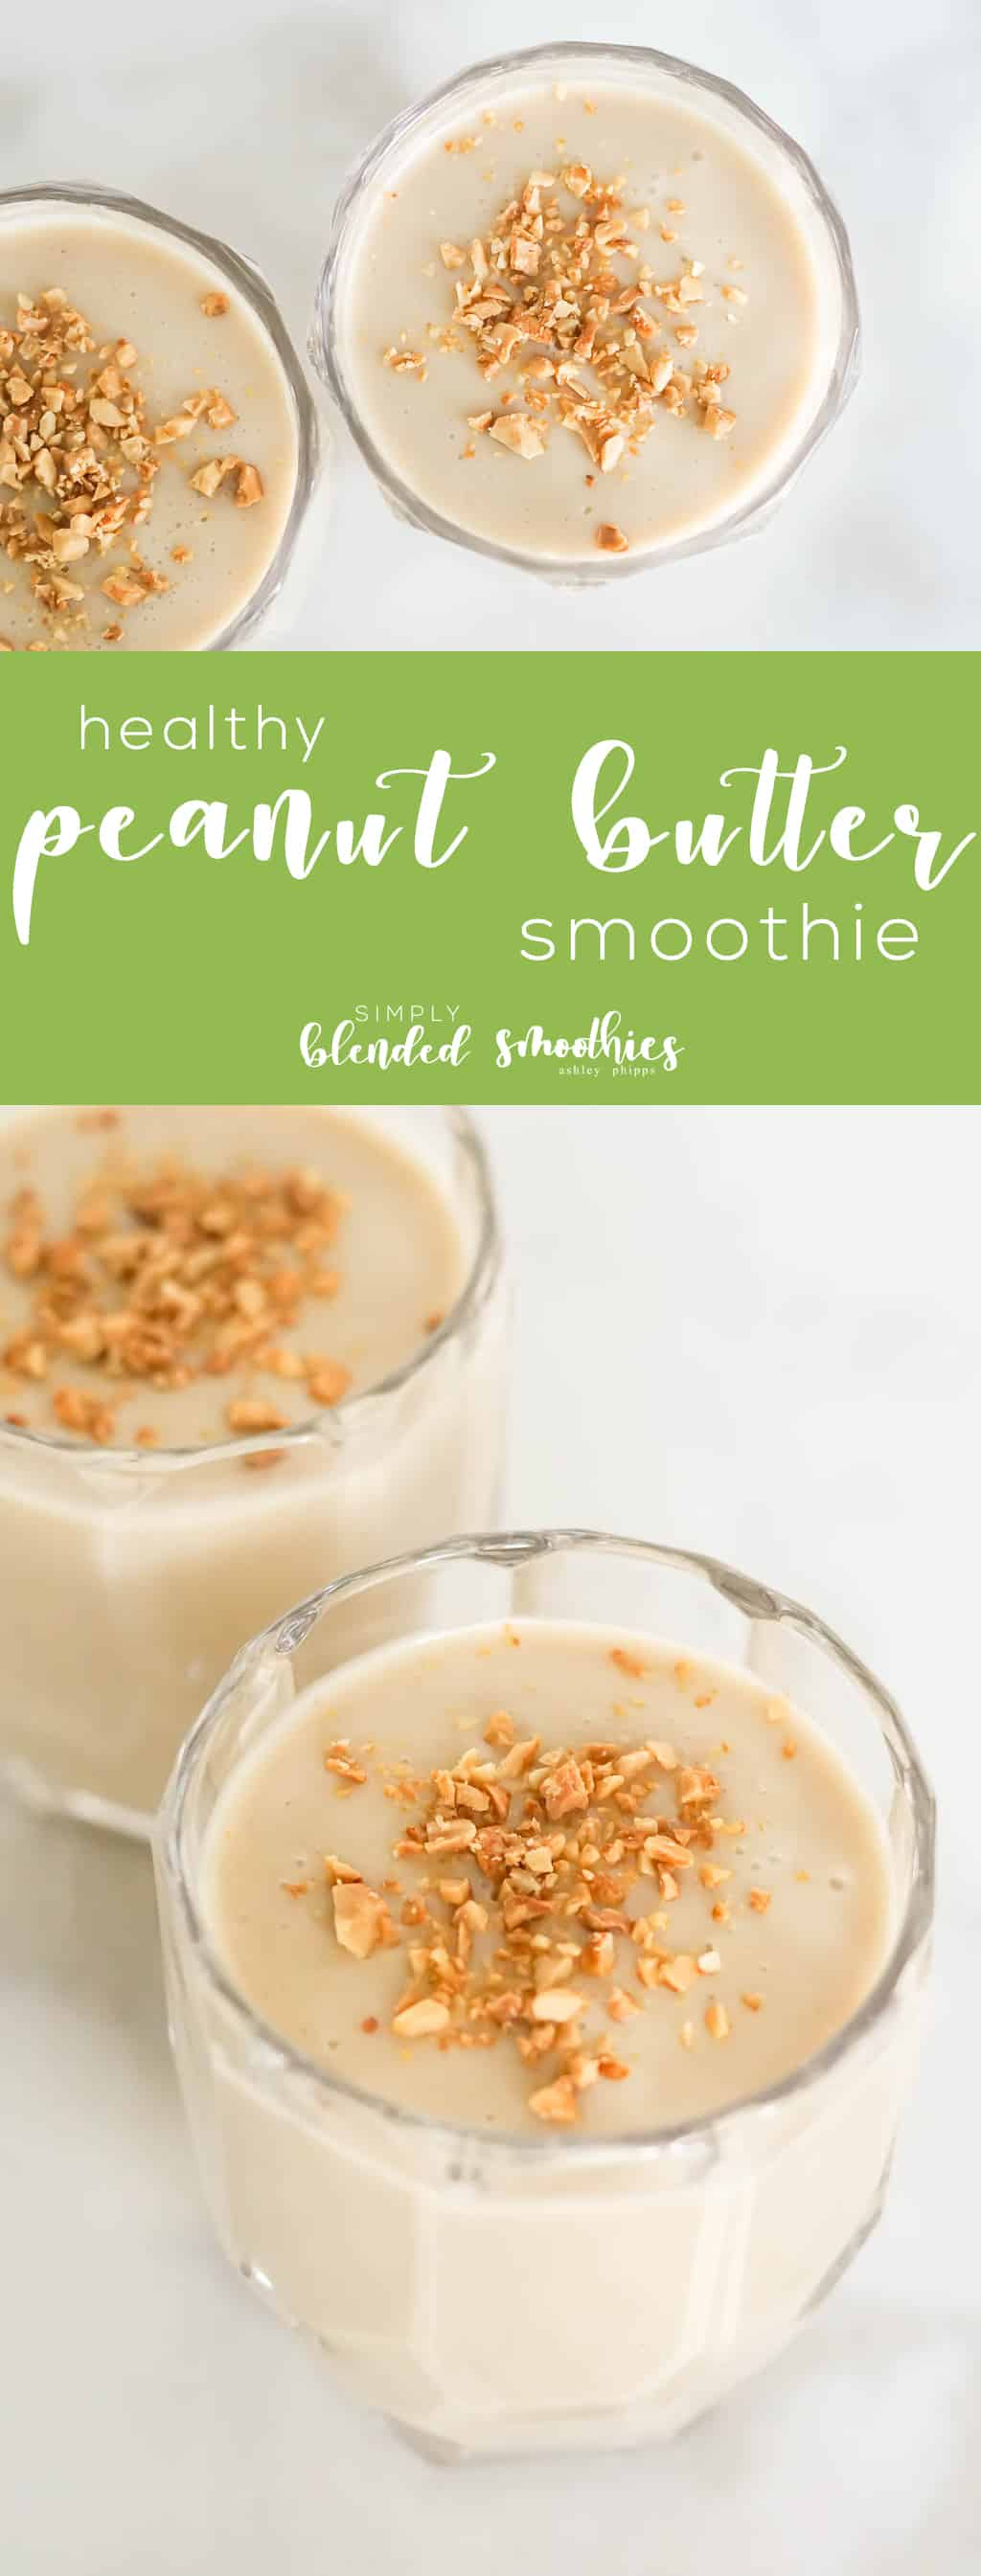 Healthy Peanut Butter Smoothie Recipe - this PB Smoothie recipe is so delicious and perfect for a quick breakfast